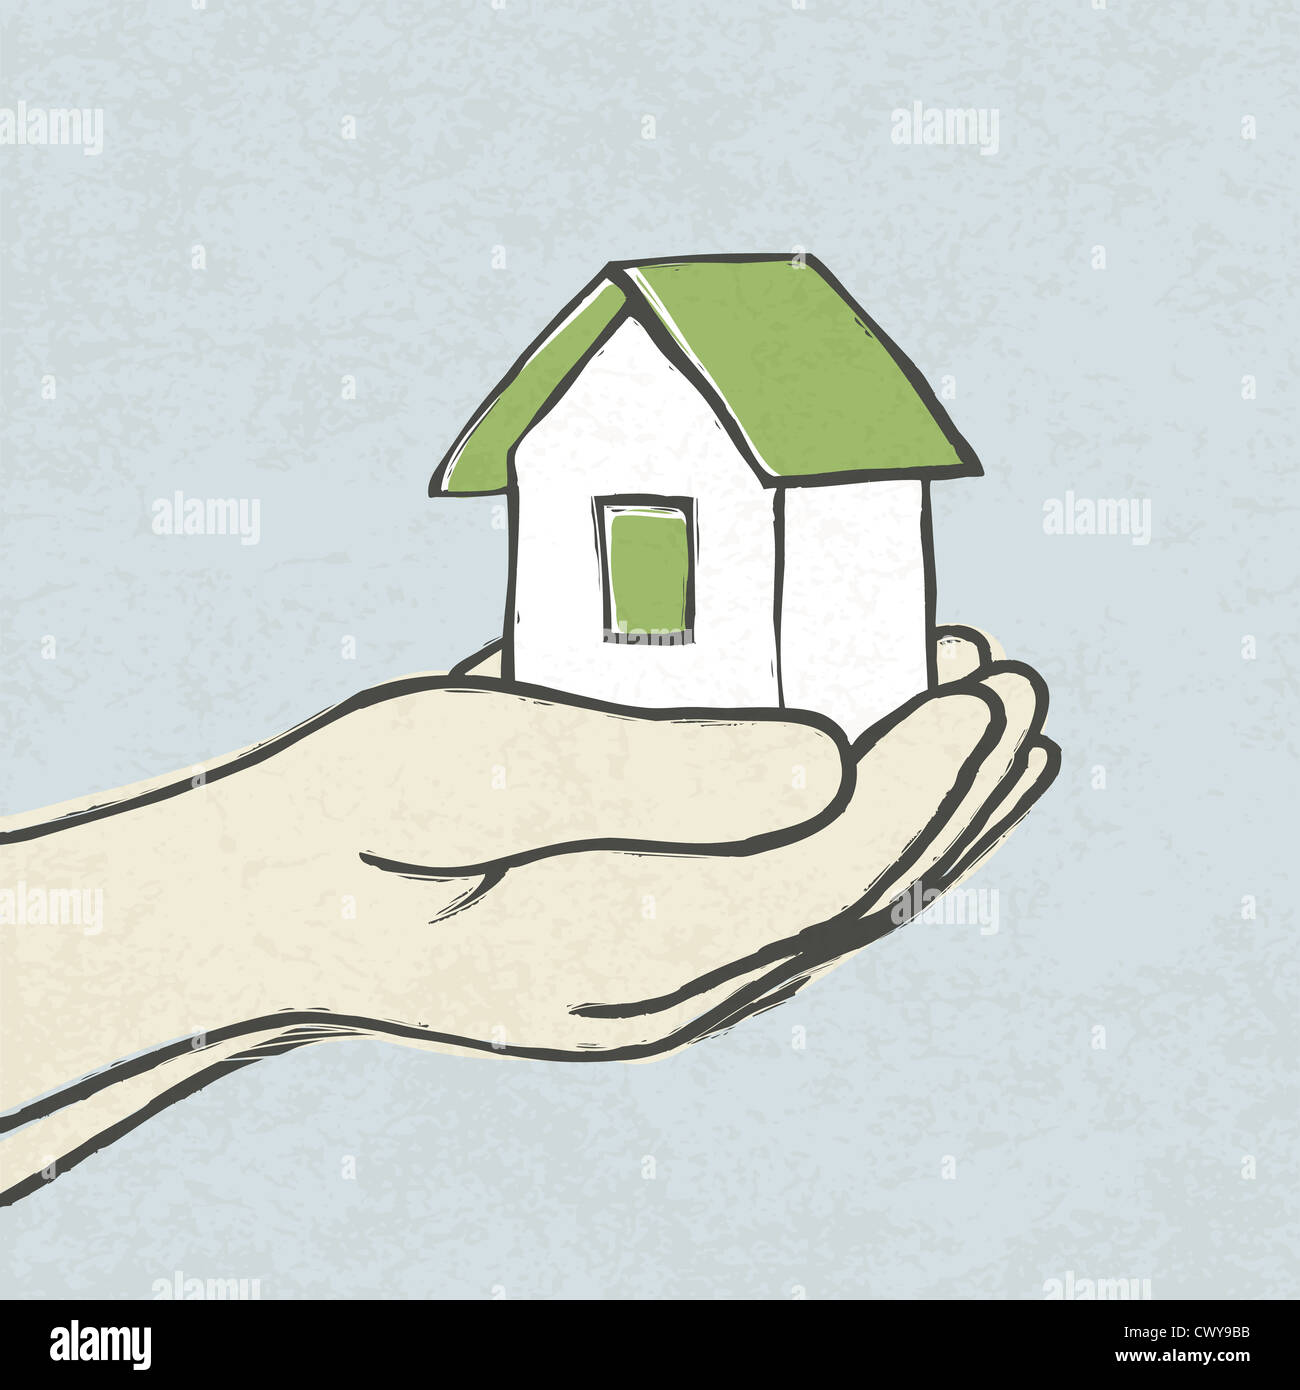 Greeen house in hands. Concept illustration - Stock Image